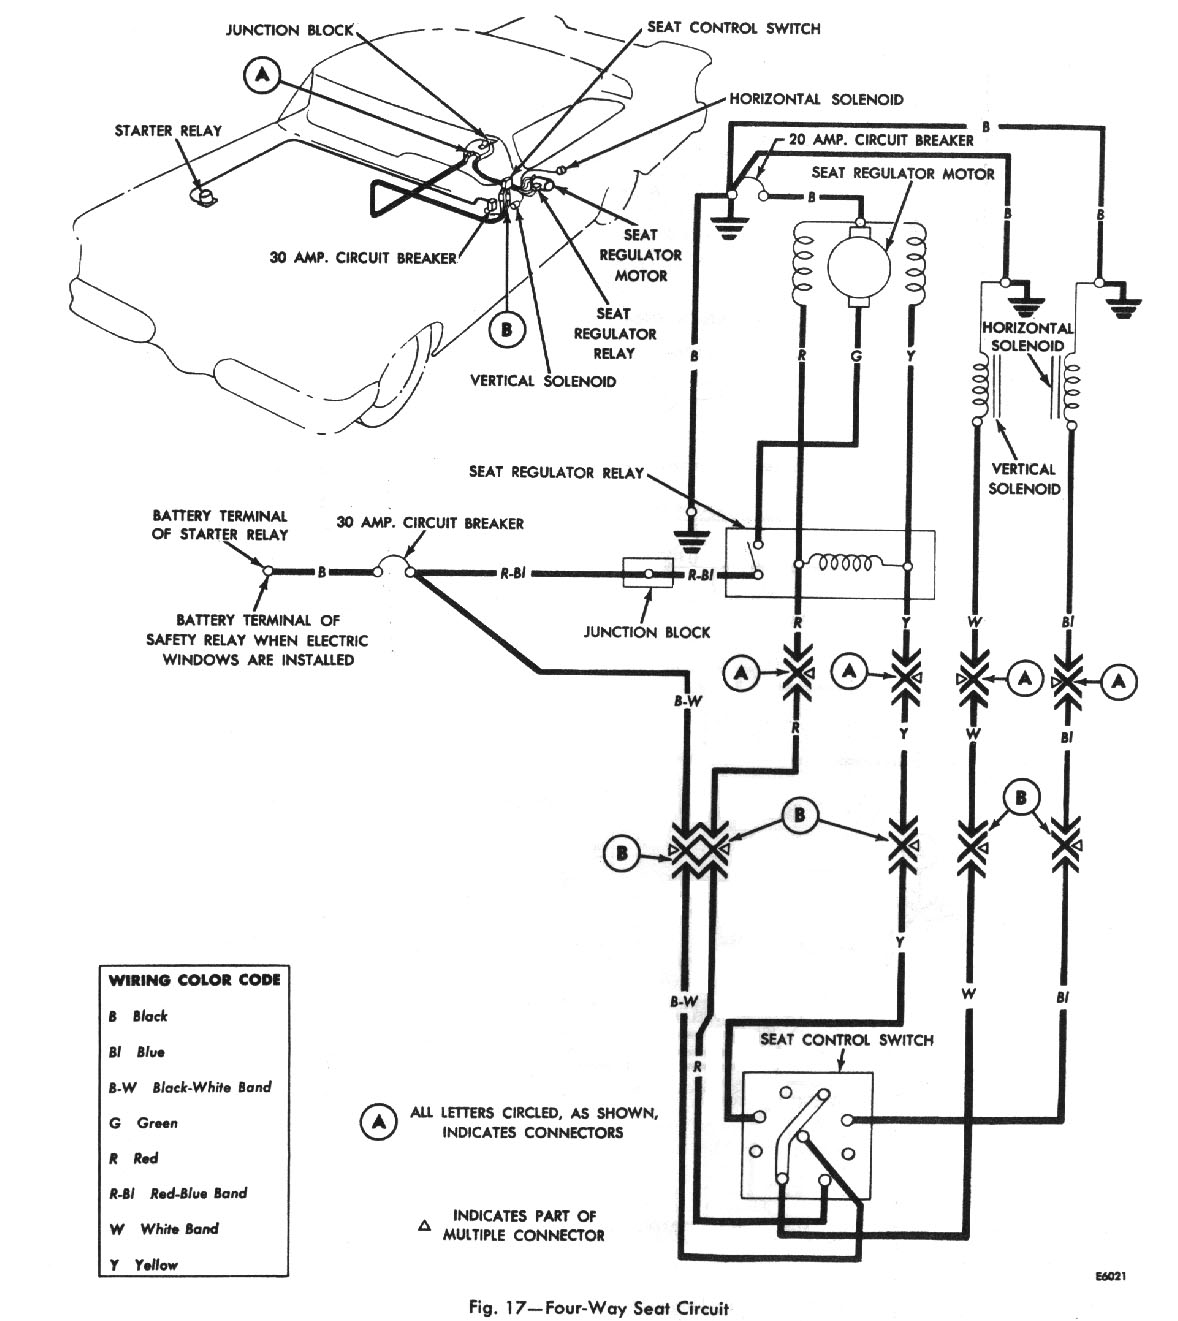 Rolls Royce Wiper Motor Wiring Diagram